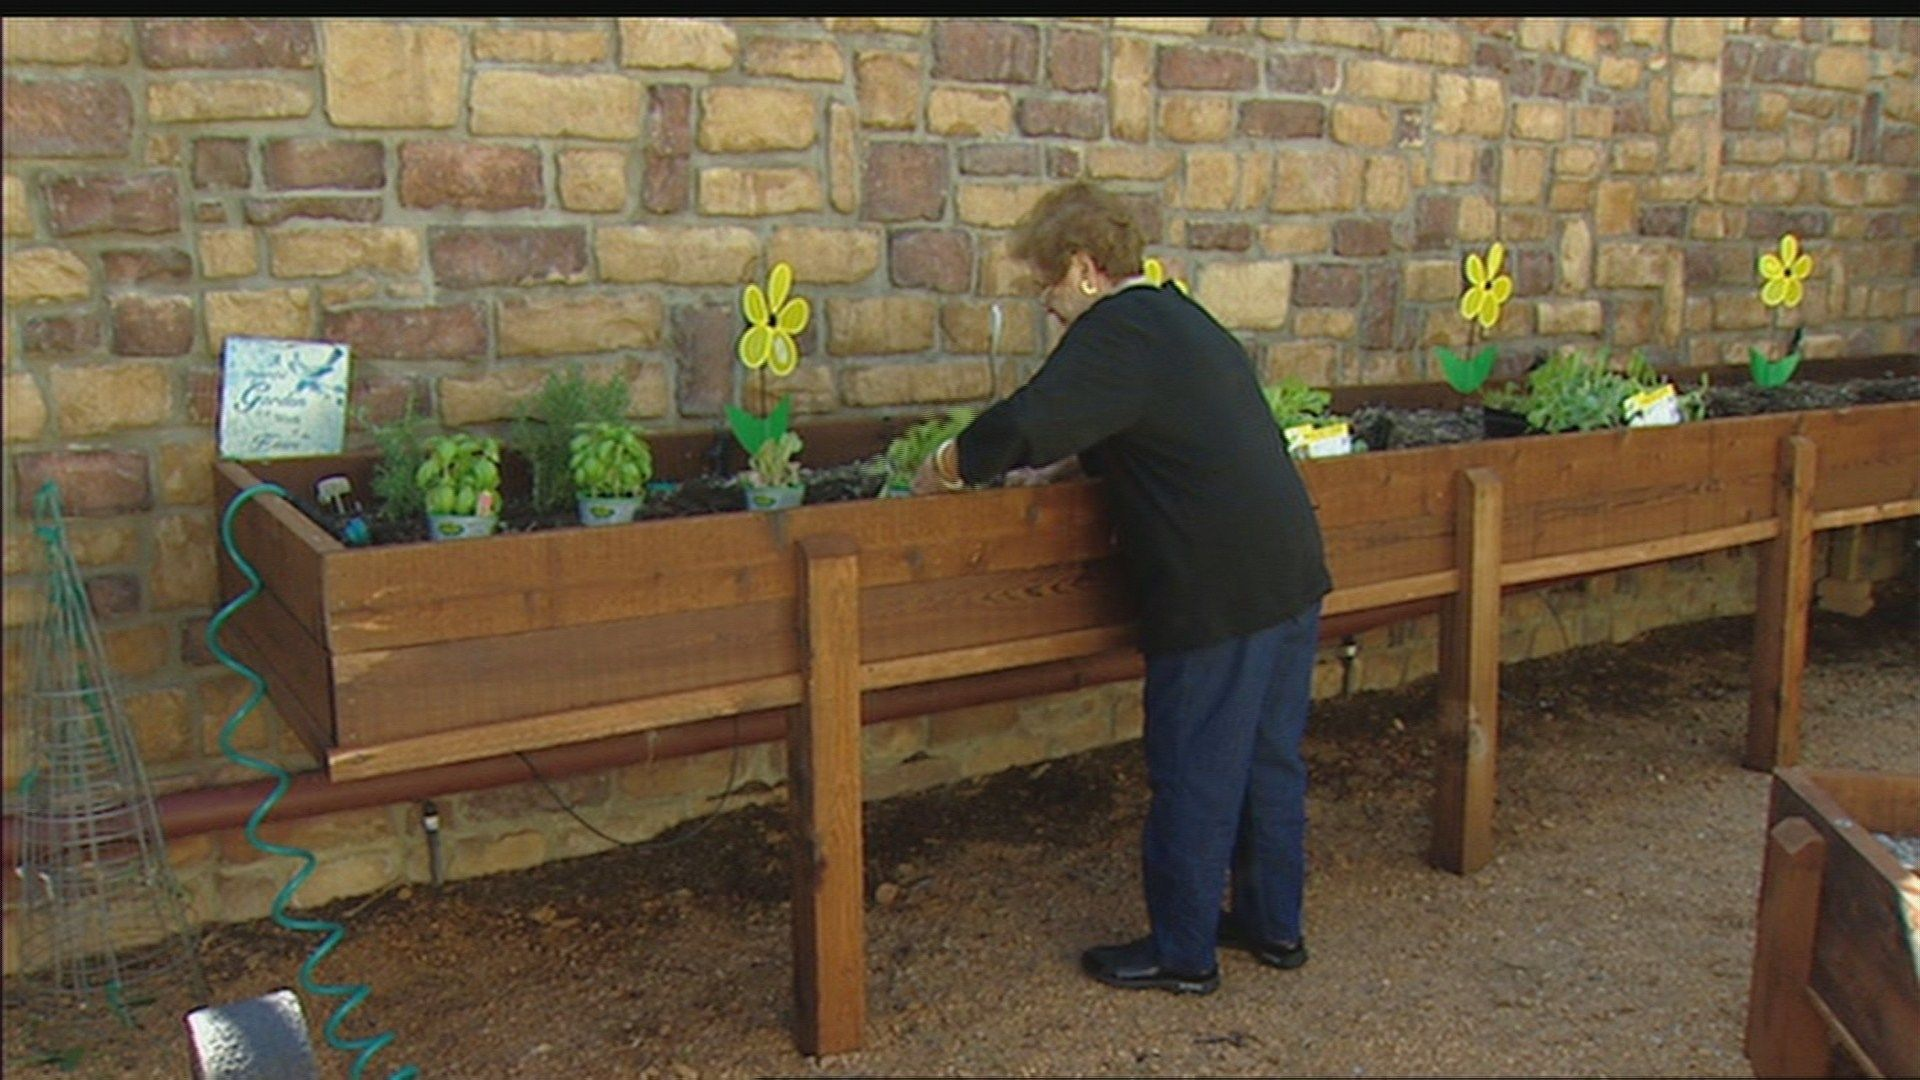 Horticulture therapy growing in memory care centers | wfaa.com ...